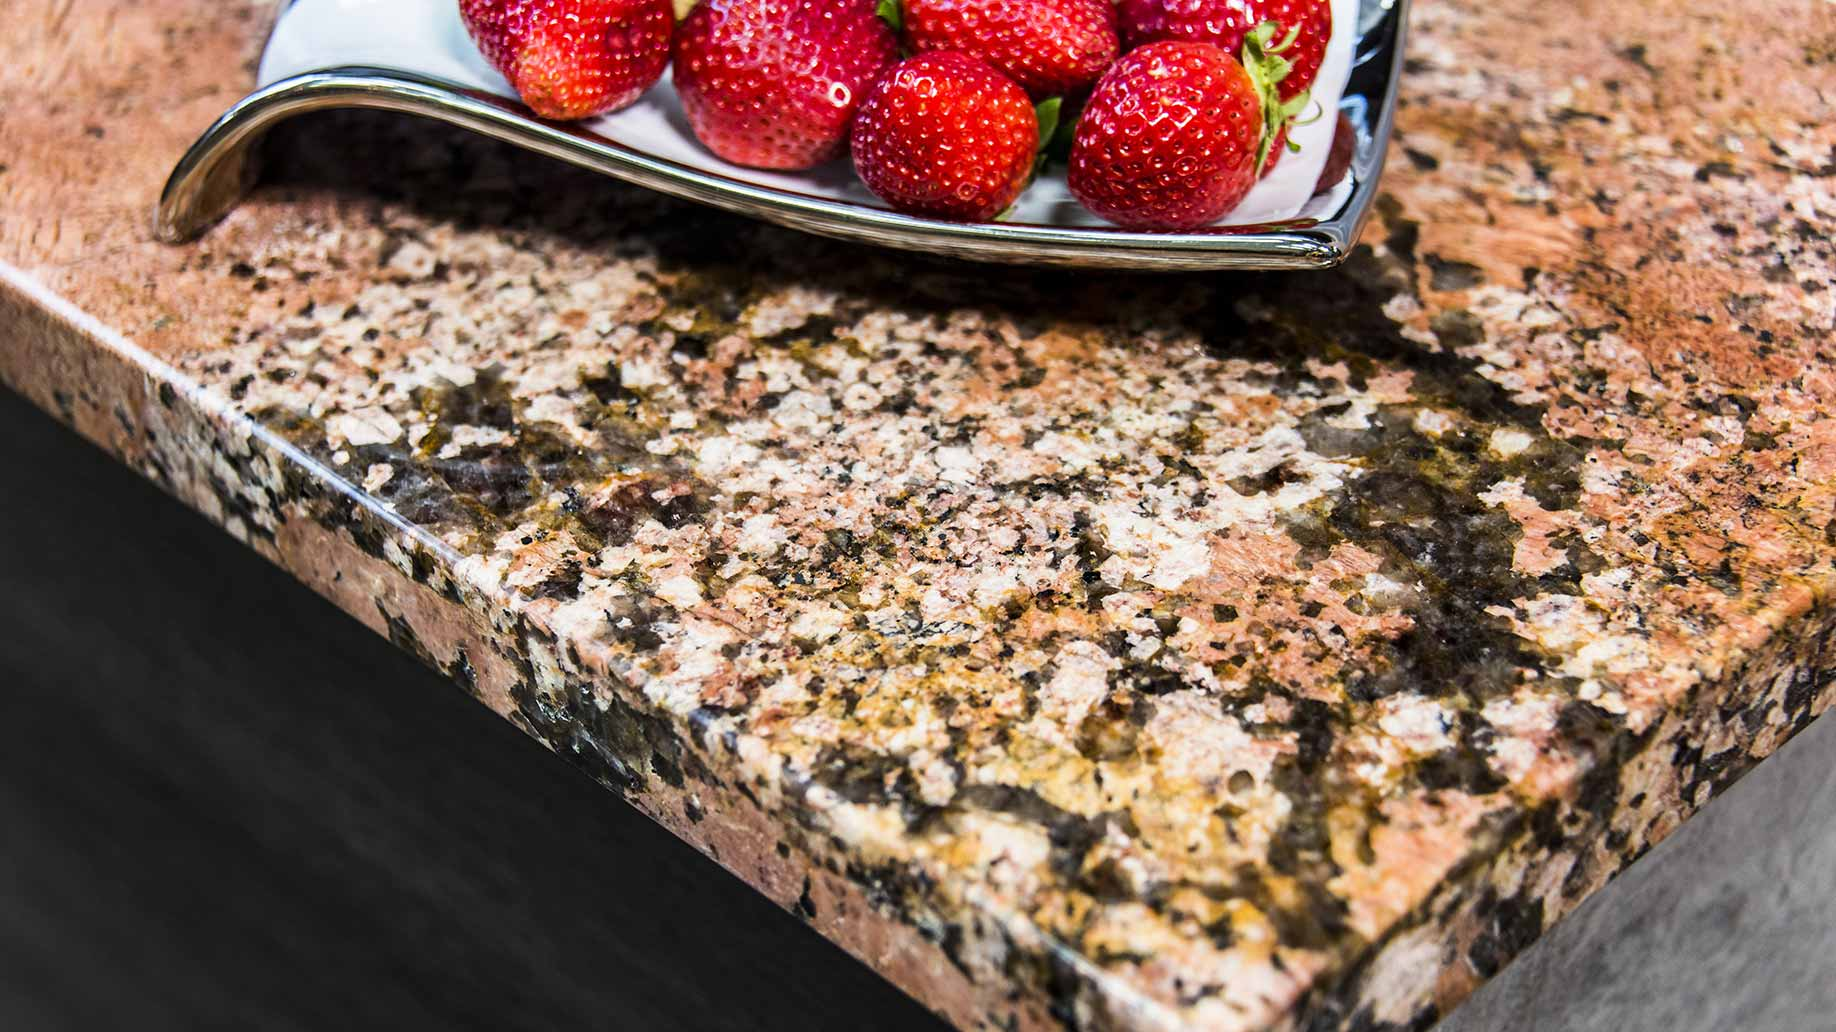 a section of granite countertop with a plate of strawberries